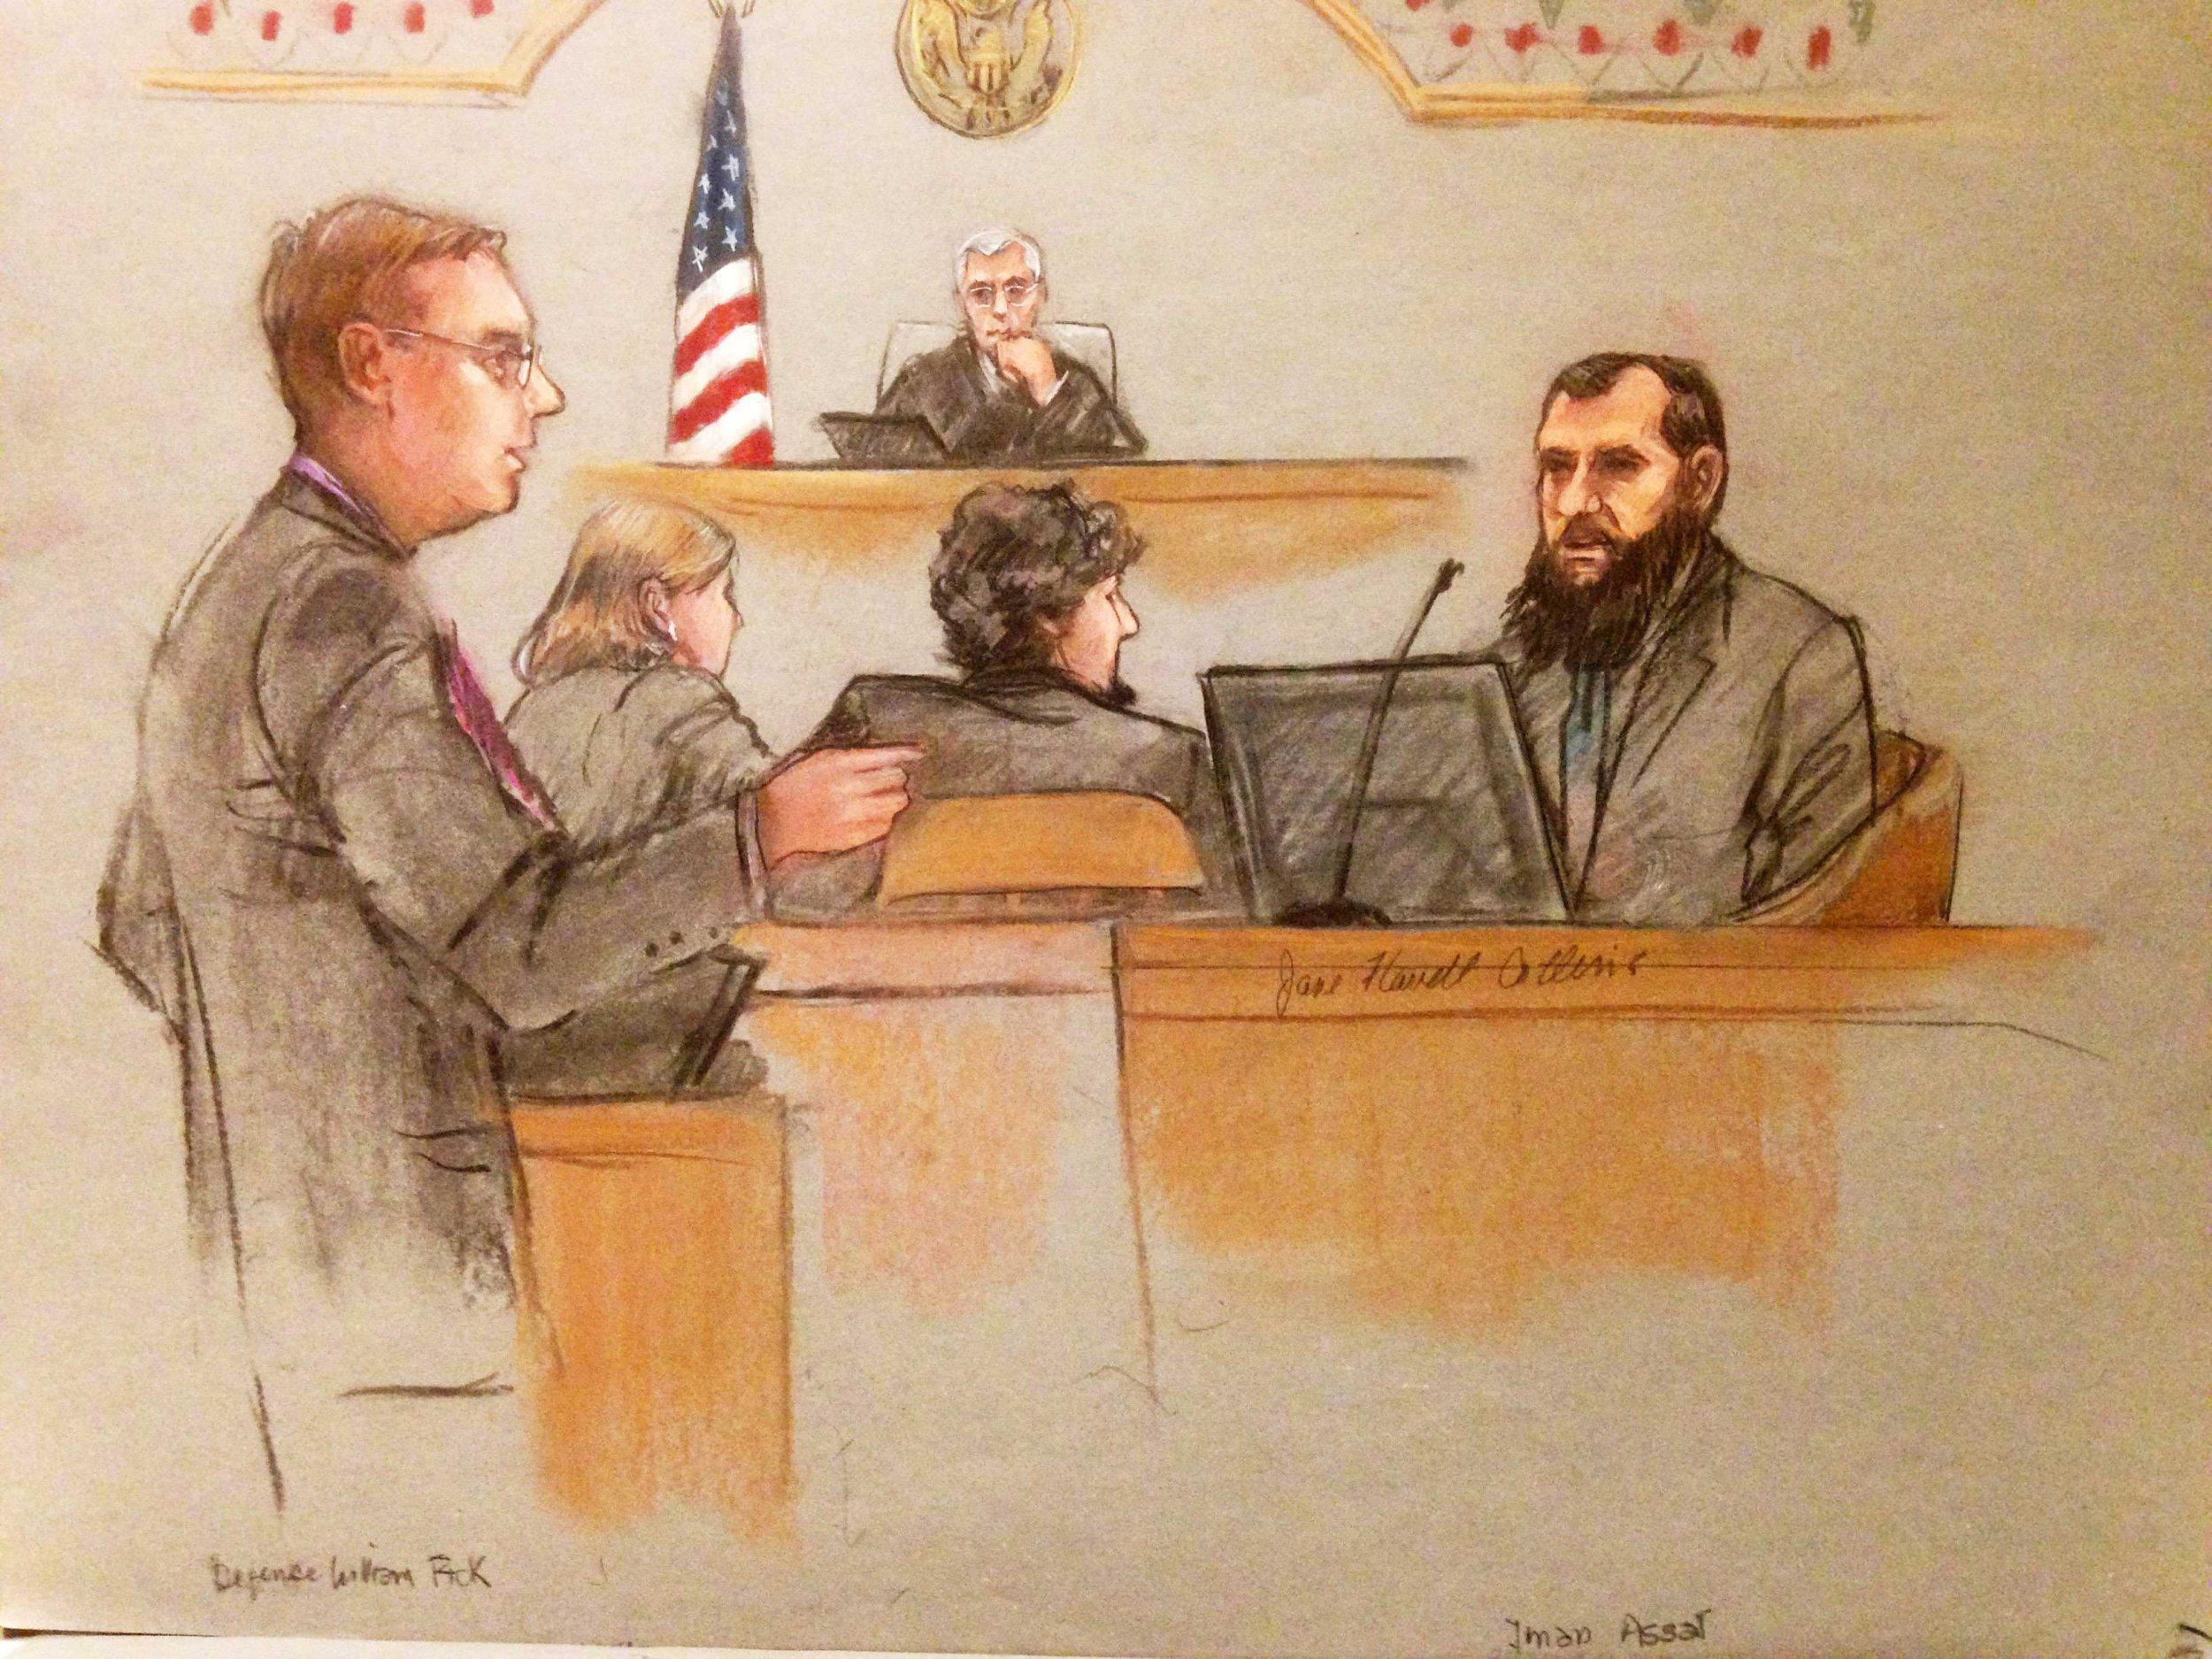 2015-04-27T233507Z_558926266_TM3EB4R1IBJ01_RTRMADP_3_BOSTON-BOMBINGS-TRIAL